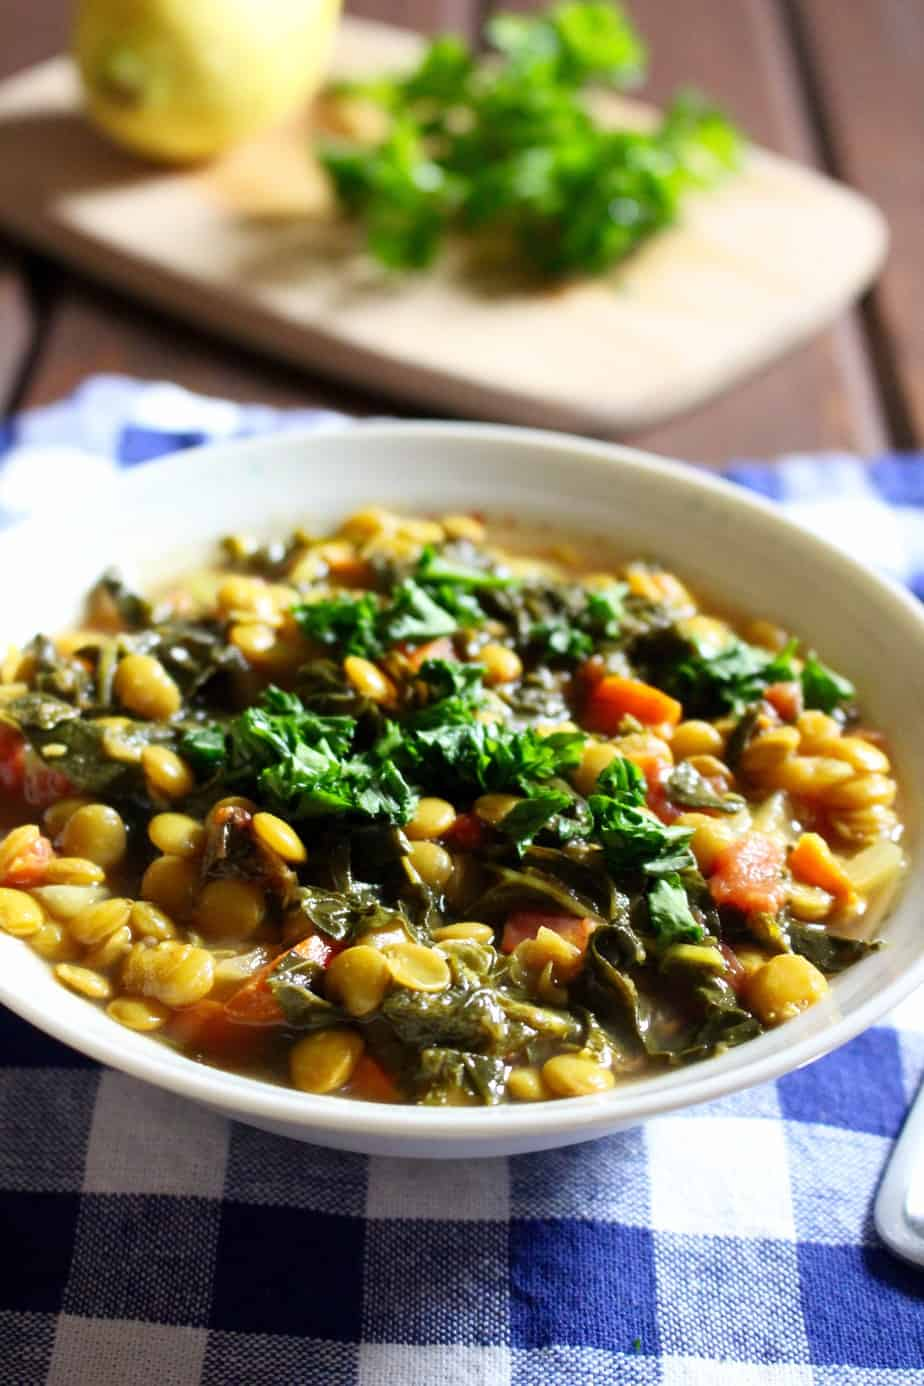 Easy Lemony Lentil Stew with Kale | Frugal Nutrition